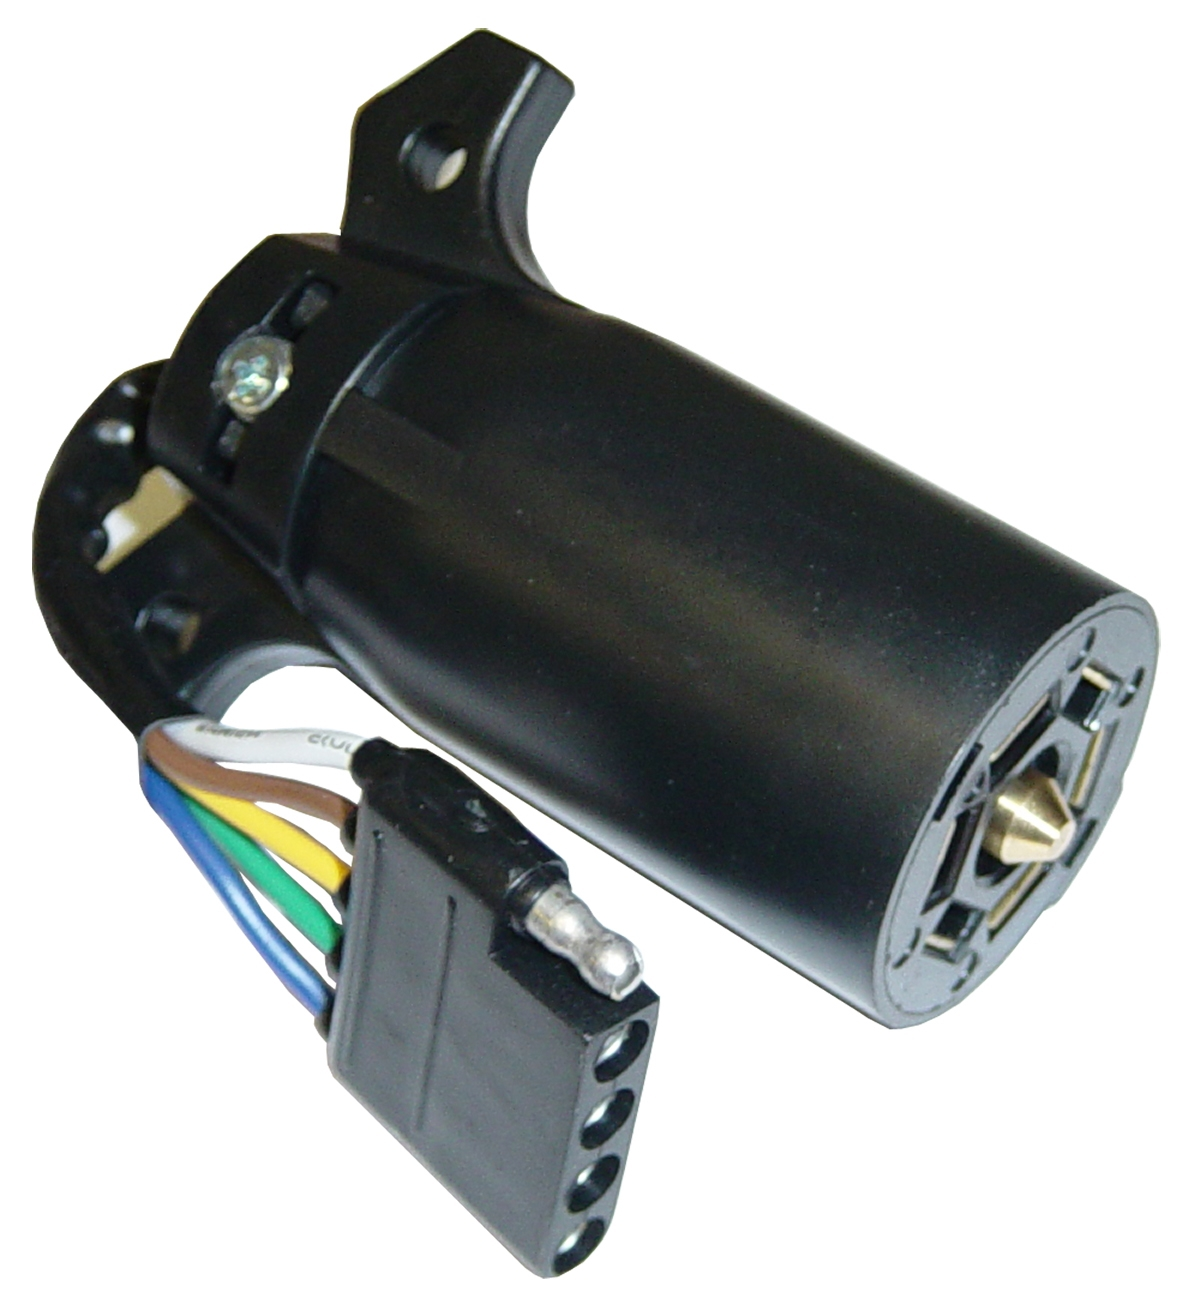 hight resolution of kimpex trailer wire adapter with lead